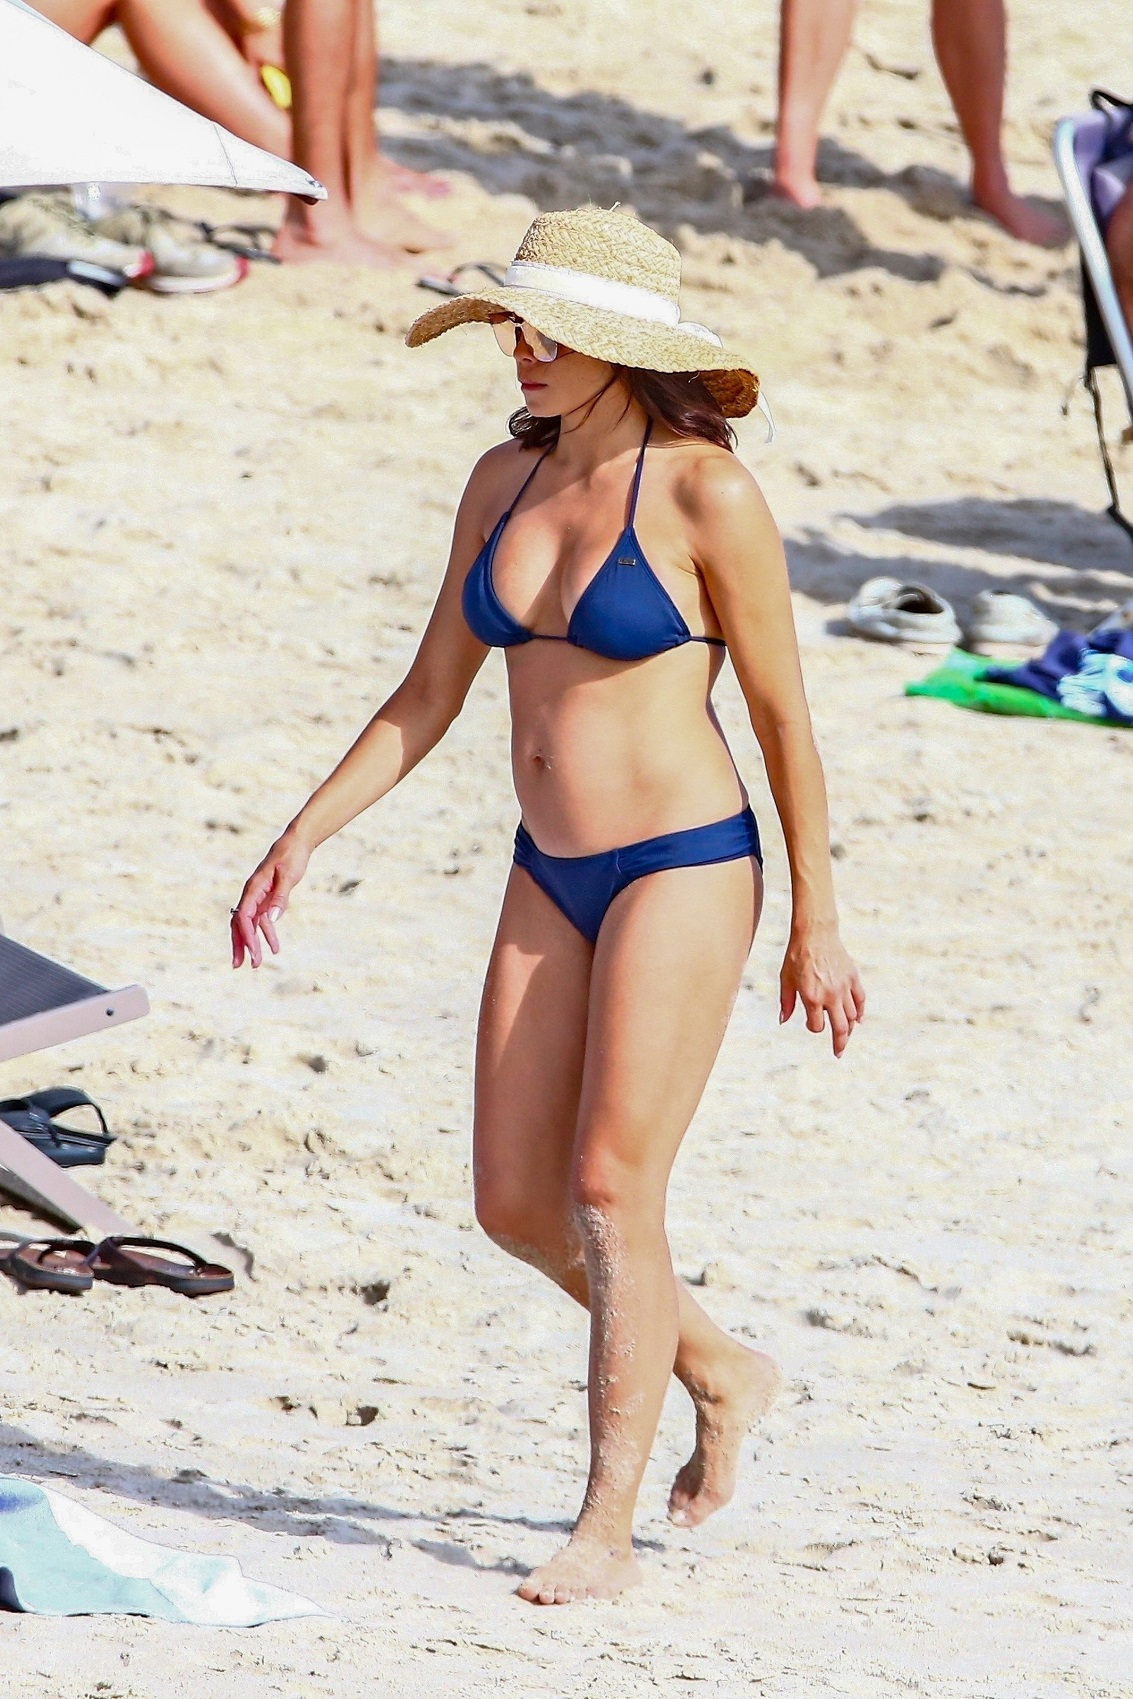 Los Angeles, CA  - *EXCLUSIVE*  - *Web Must Call For Pricing* Jenna Dewan kicks off her Labor Day weekend with a trip to a Los Angeles beach with her boyfriend Steve Kazee and daughter Everly Tatum. Jenna flaunts her toned figured in a navy blue bikini accessorized with a straw hat. *Shot on 08/30/19*  *UK Clients - Pictures Containing Children Please Pixelate Face Prior To Publication*, Image: 468261514, License: Rights-managed, Restrictions: , Model Release: no, Credit line: Profimedia, Backgrid USA